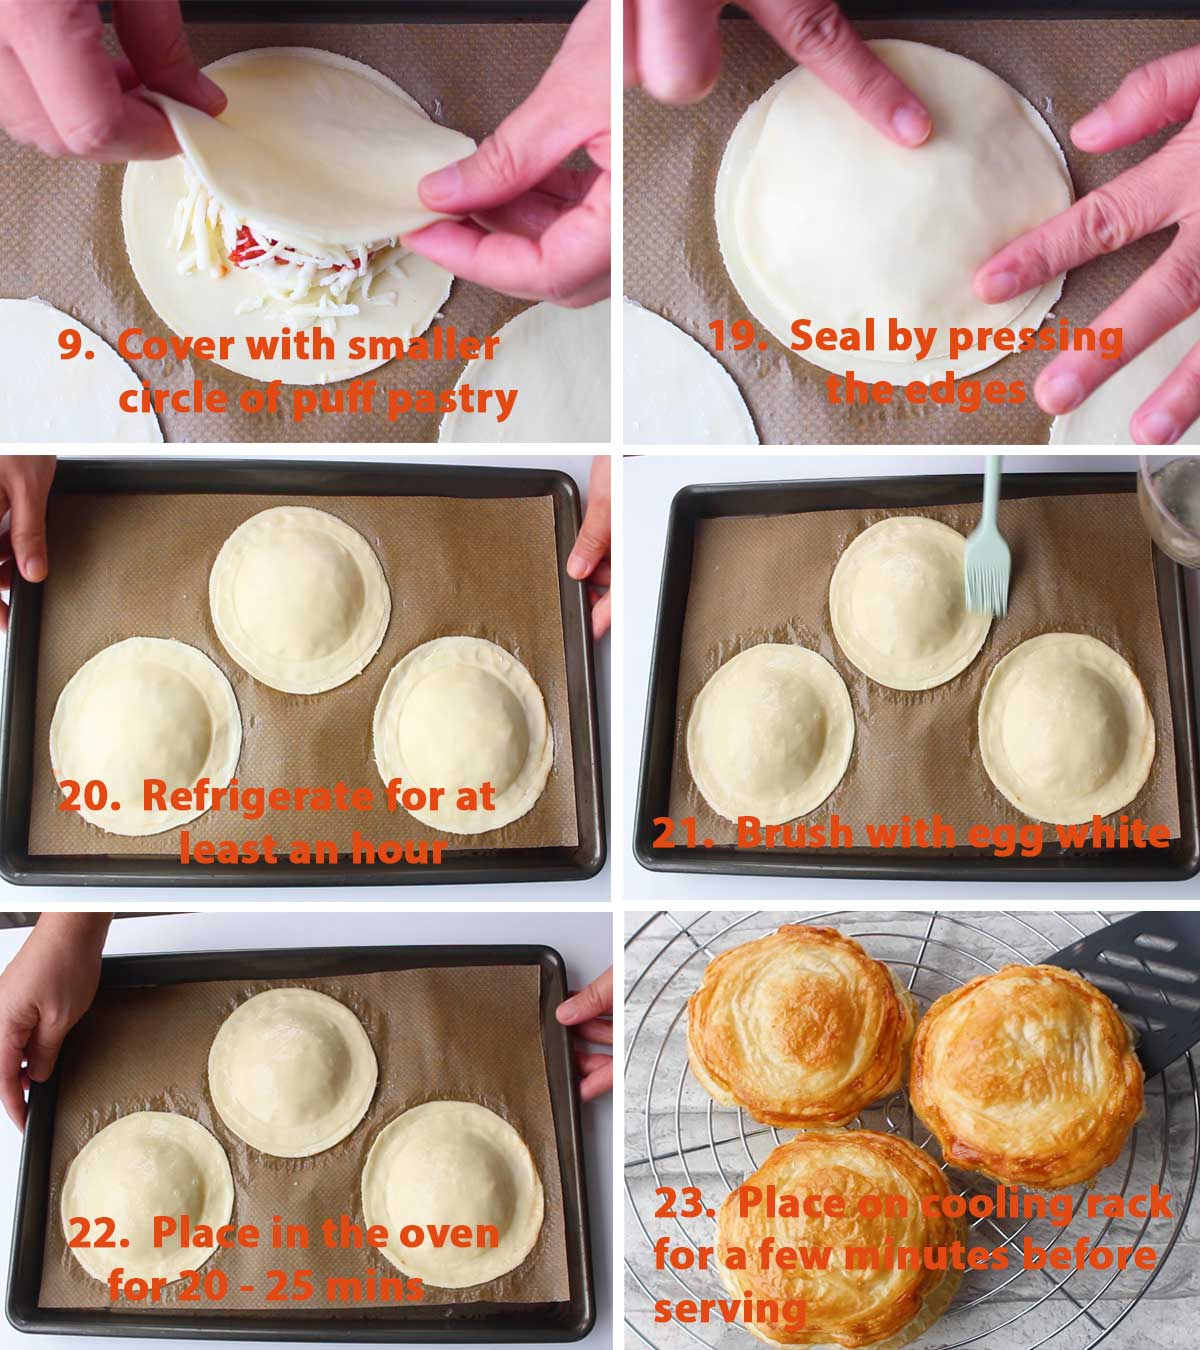 Last part of a collage showing the step by step process on how to make Rustico Leccese (Tomato and Mozzarella Pastry). They are quite addictive! The crunch and the combination of flavors from the béchamel sauce, tomato sauce and mozzarella, just YUM!